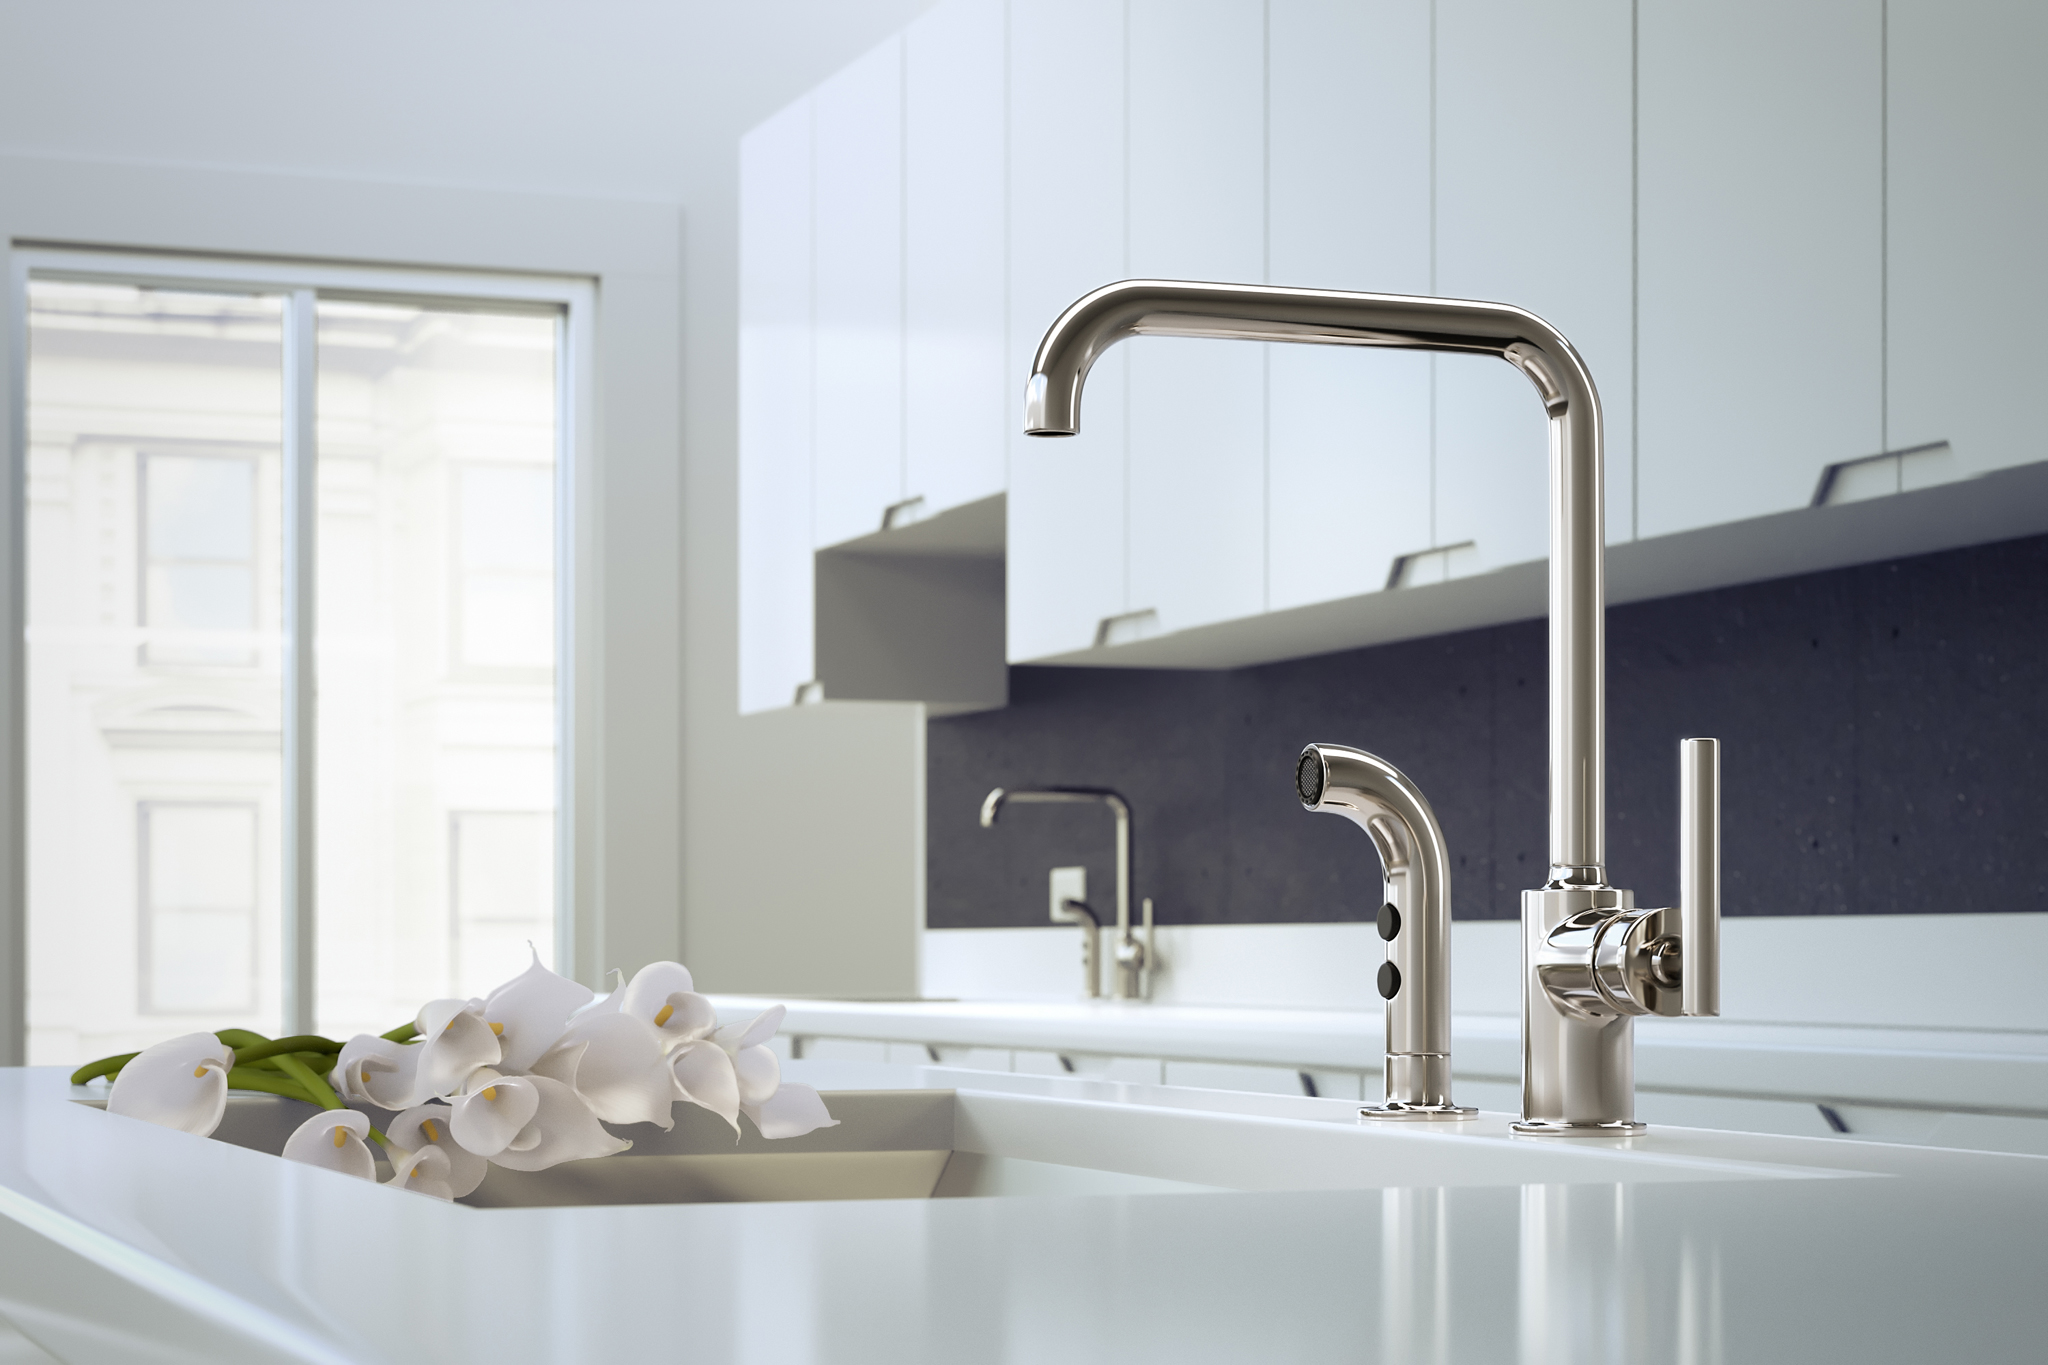 3d rendering of white kitchen cabinetry faucet and flowers